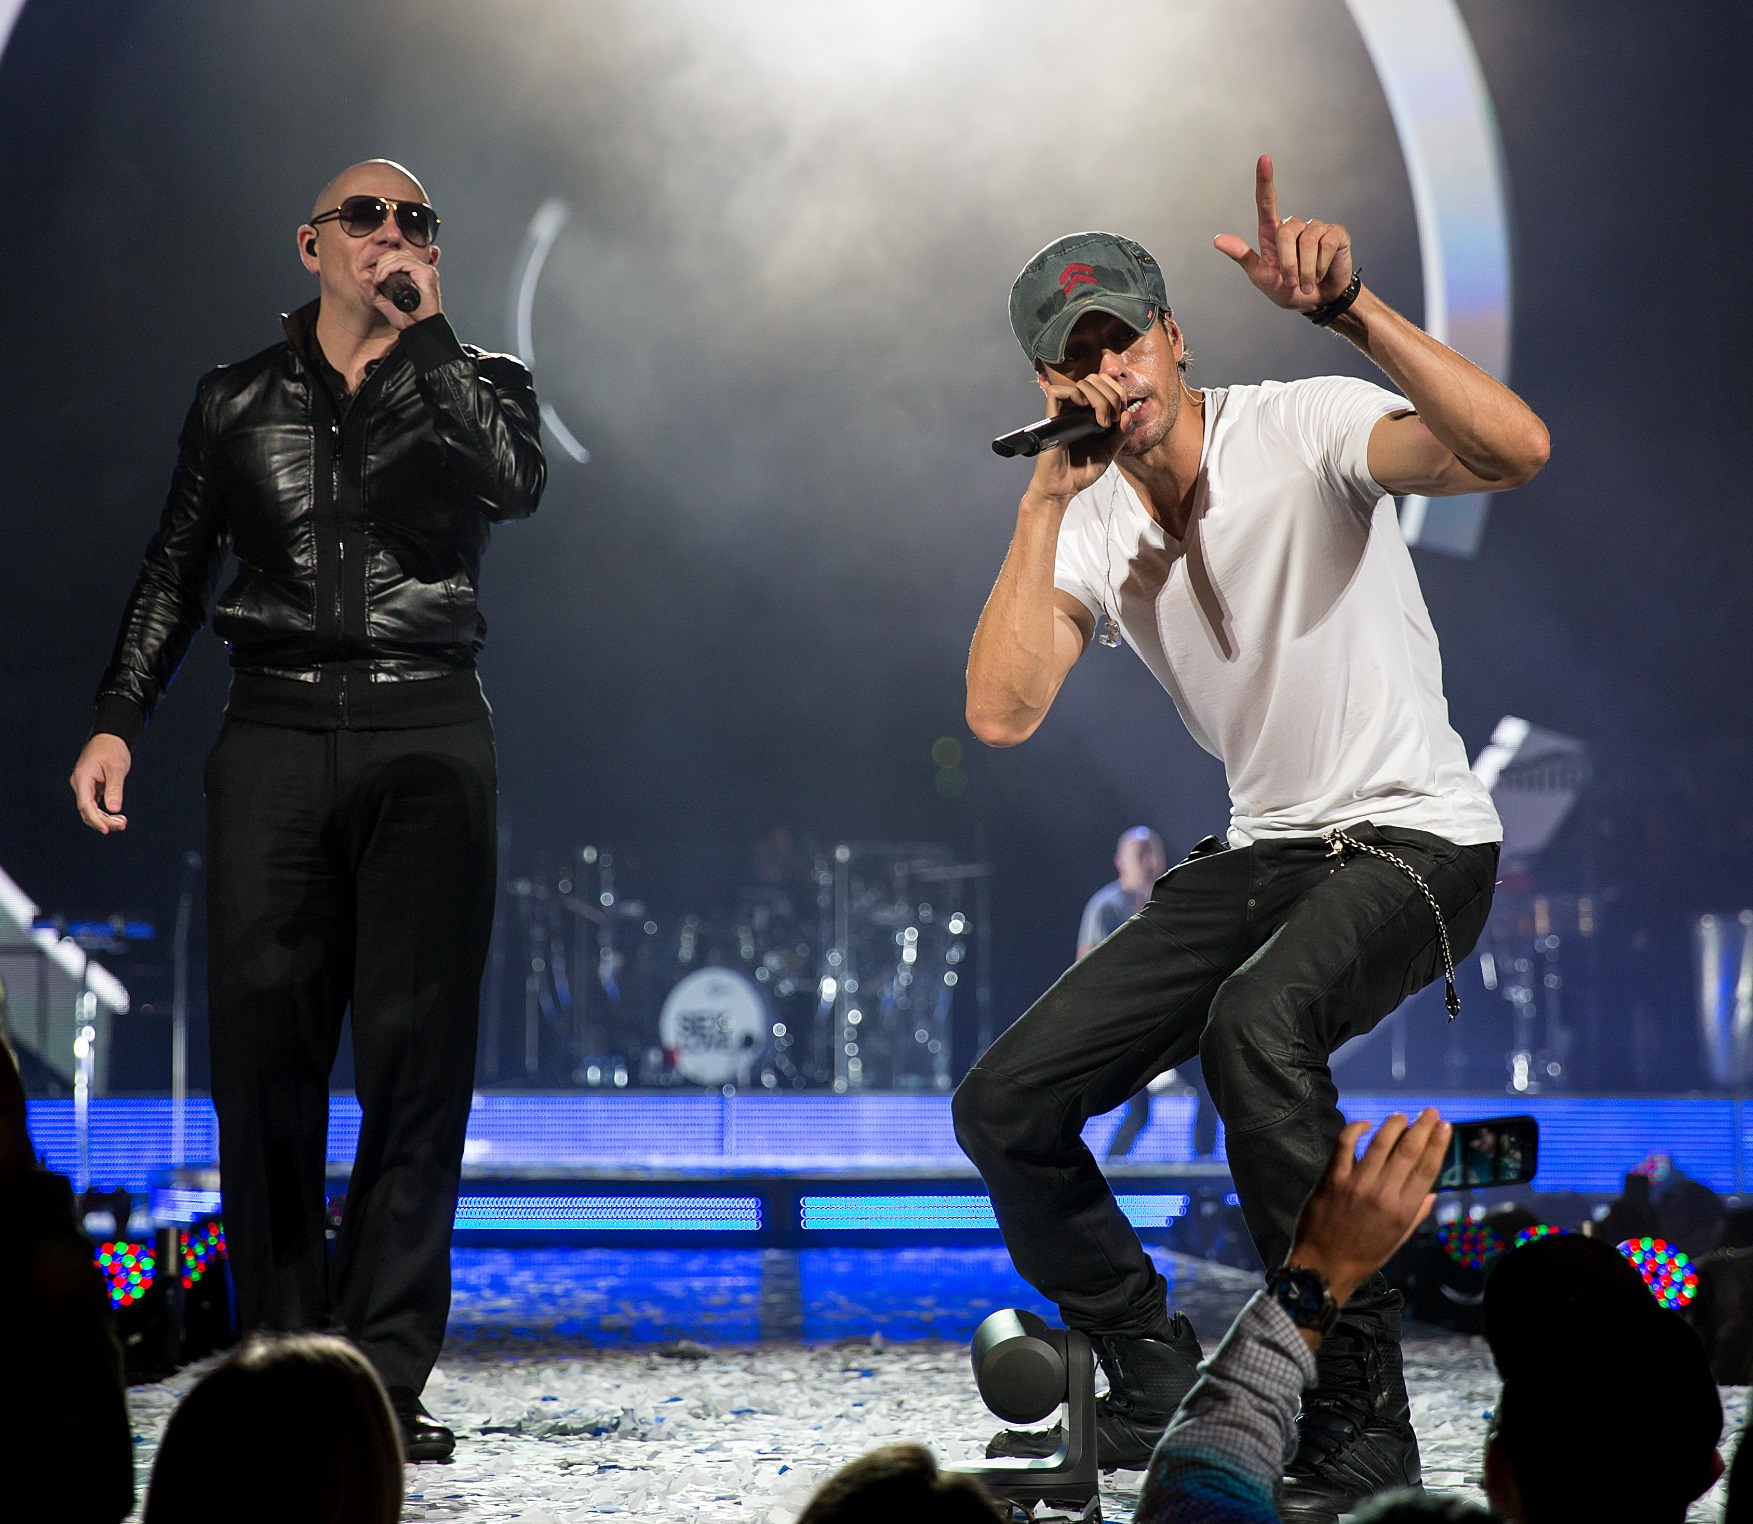 NEW MUSIC: Enrique Iglesias And Pitbull Came Out With A New Song 'Move To Miami'